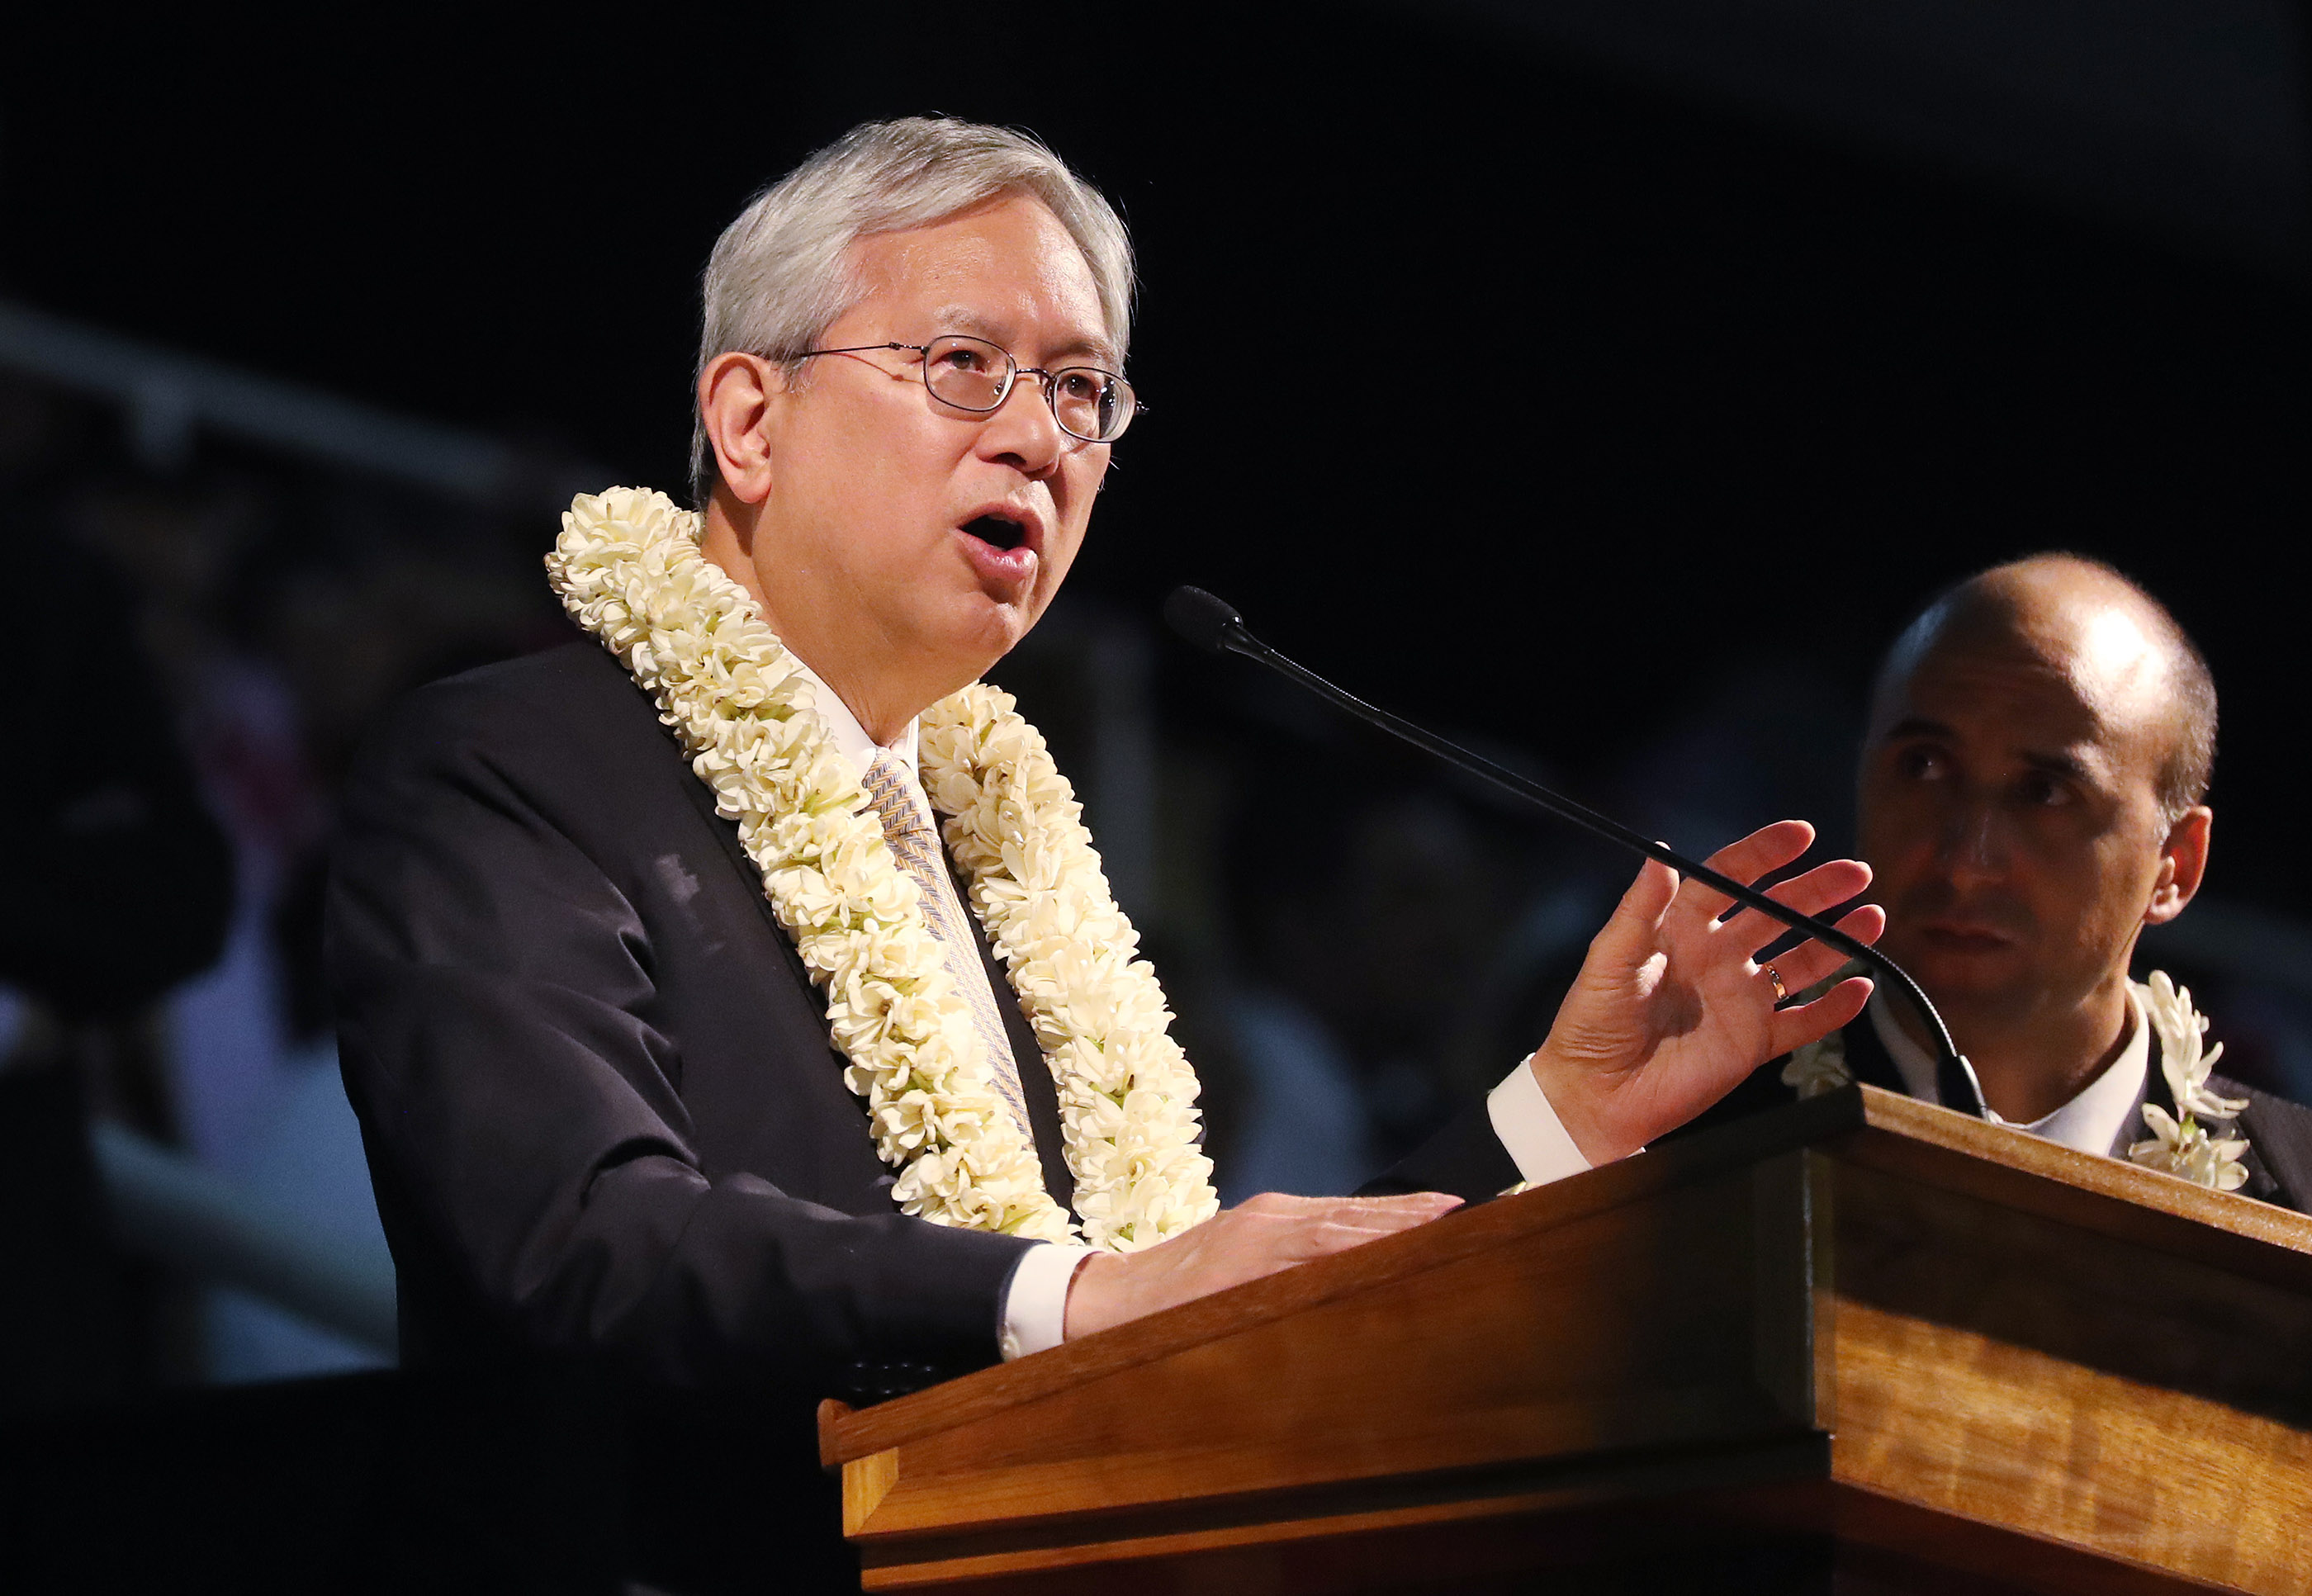 Elder Elder Gerrit W. Gong, of The Church of Jesus Christ of Latter-day Saints' Quorum of the Twelve Apostles, speaks during a devotional in Papeete, Tahiti, on May 24, 2019.